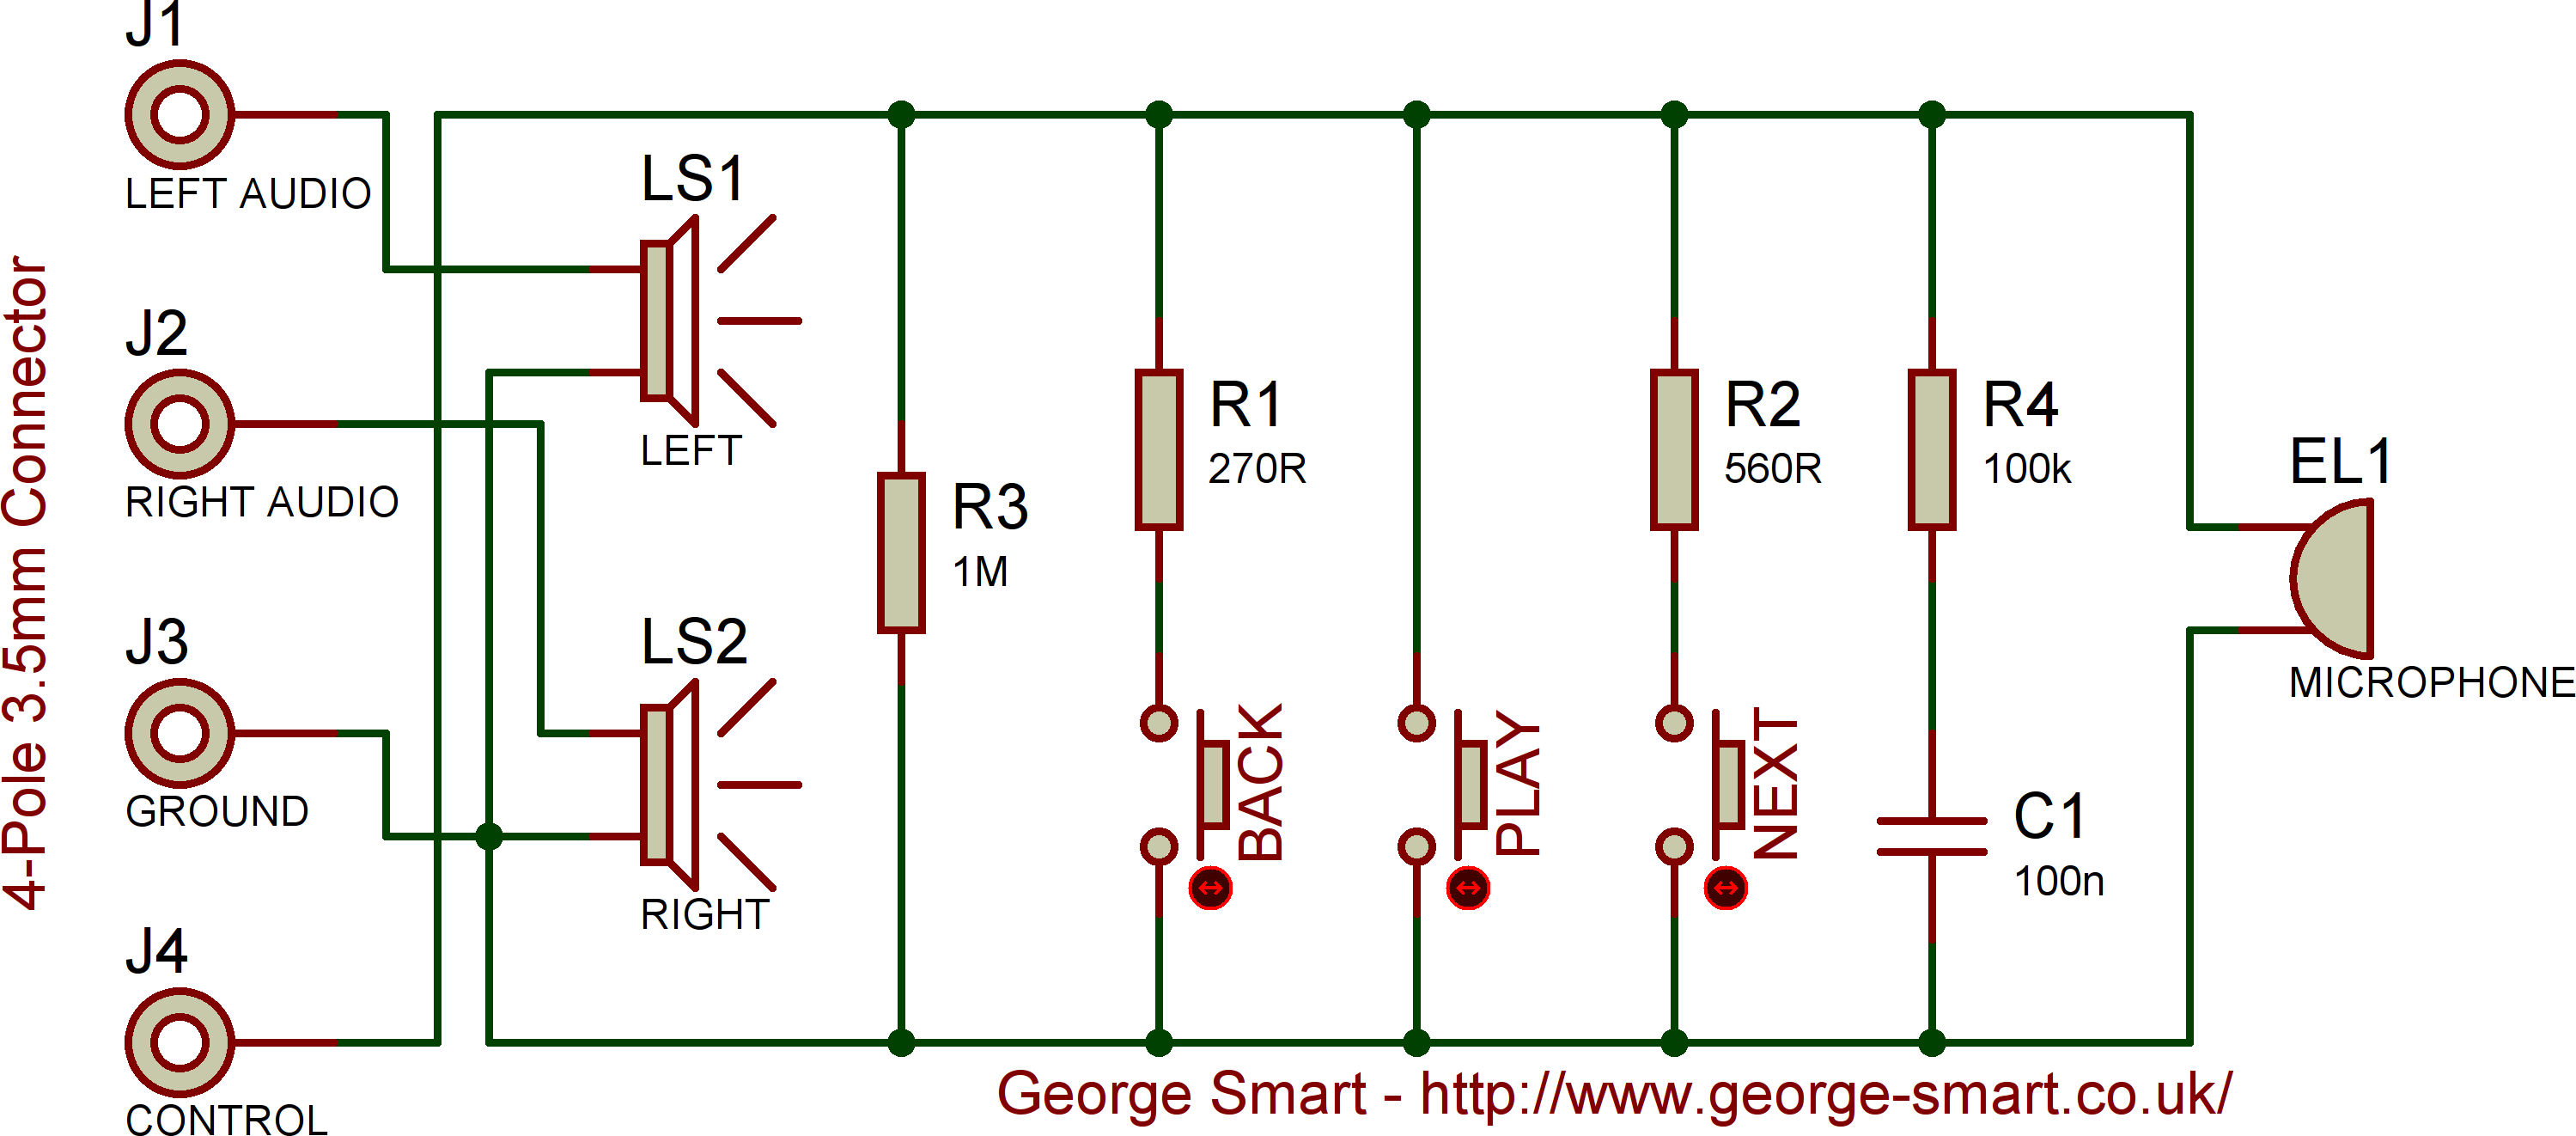 HTC Desire Headset Schematic: Click to enlarge.